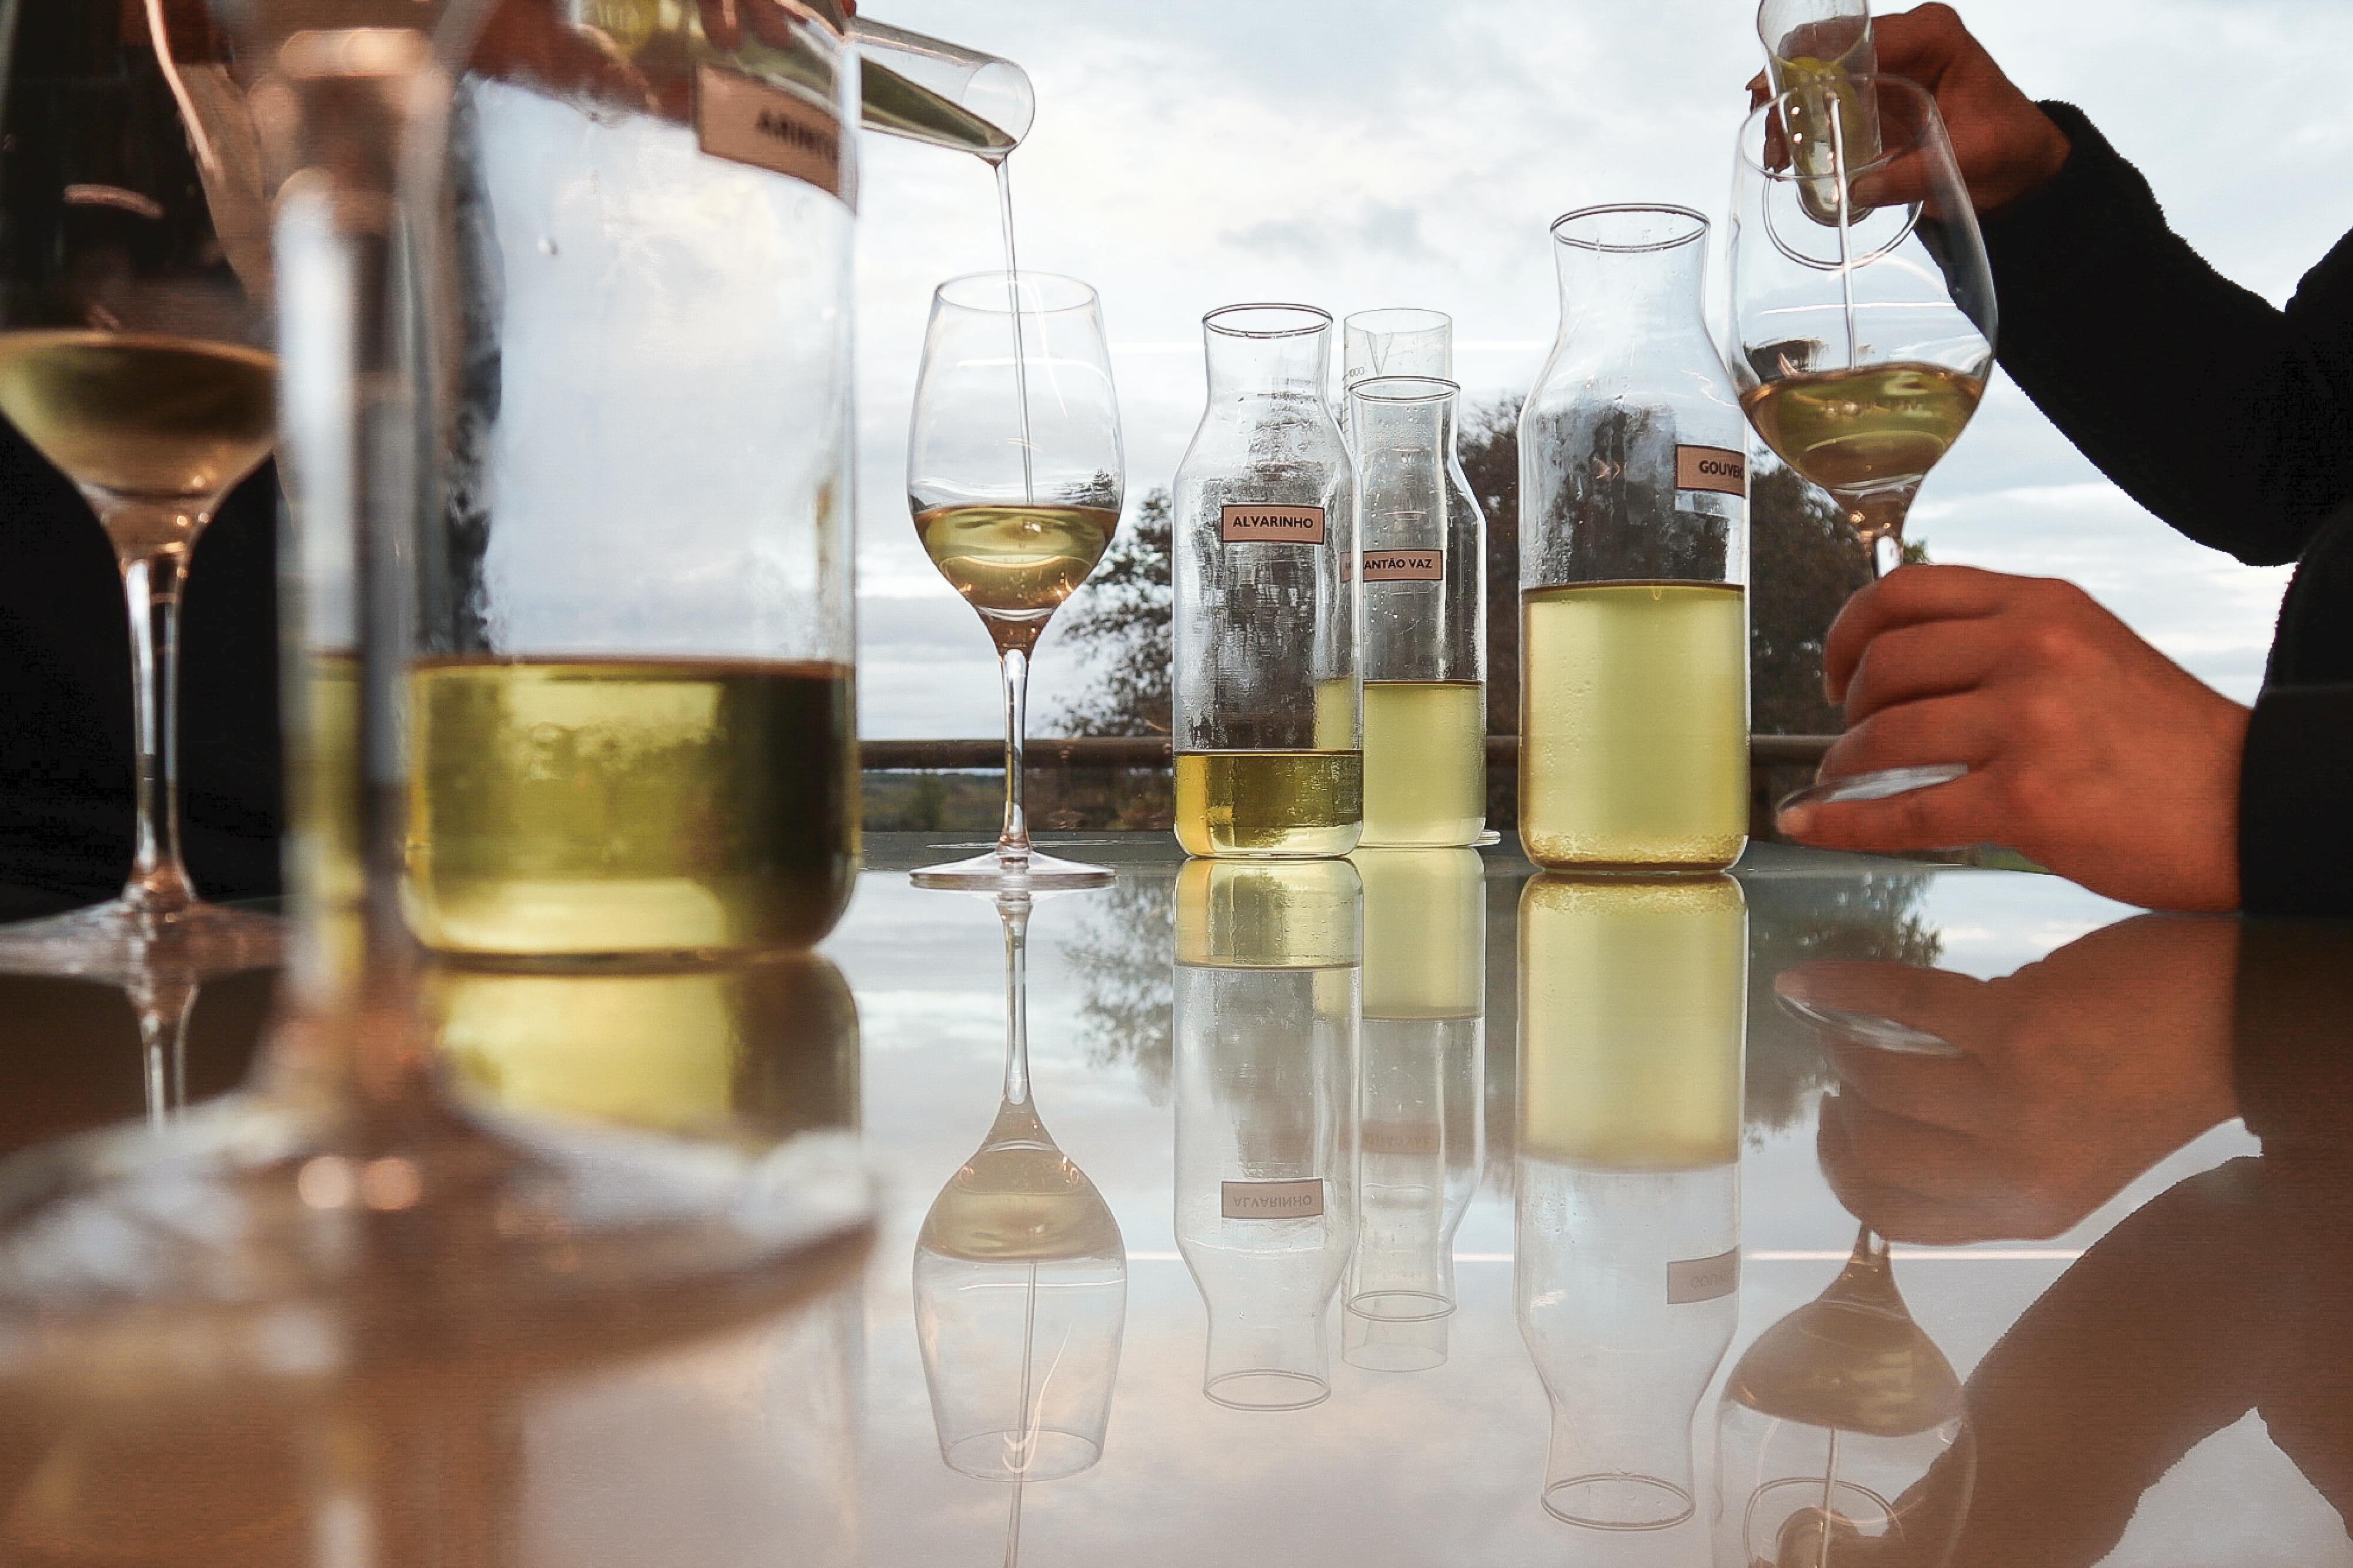 WineMaker for a day at your Home!